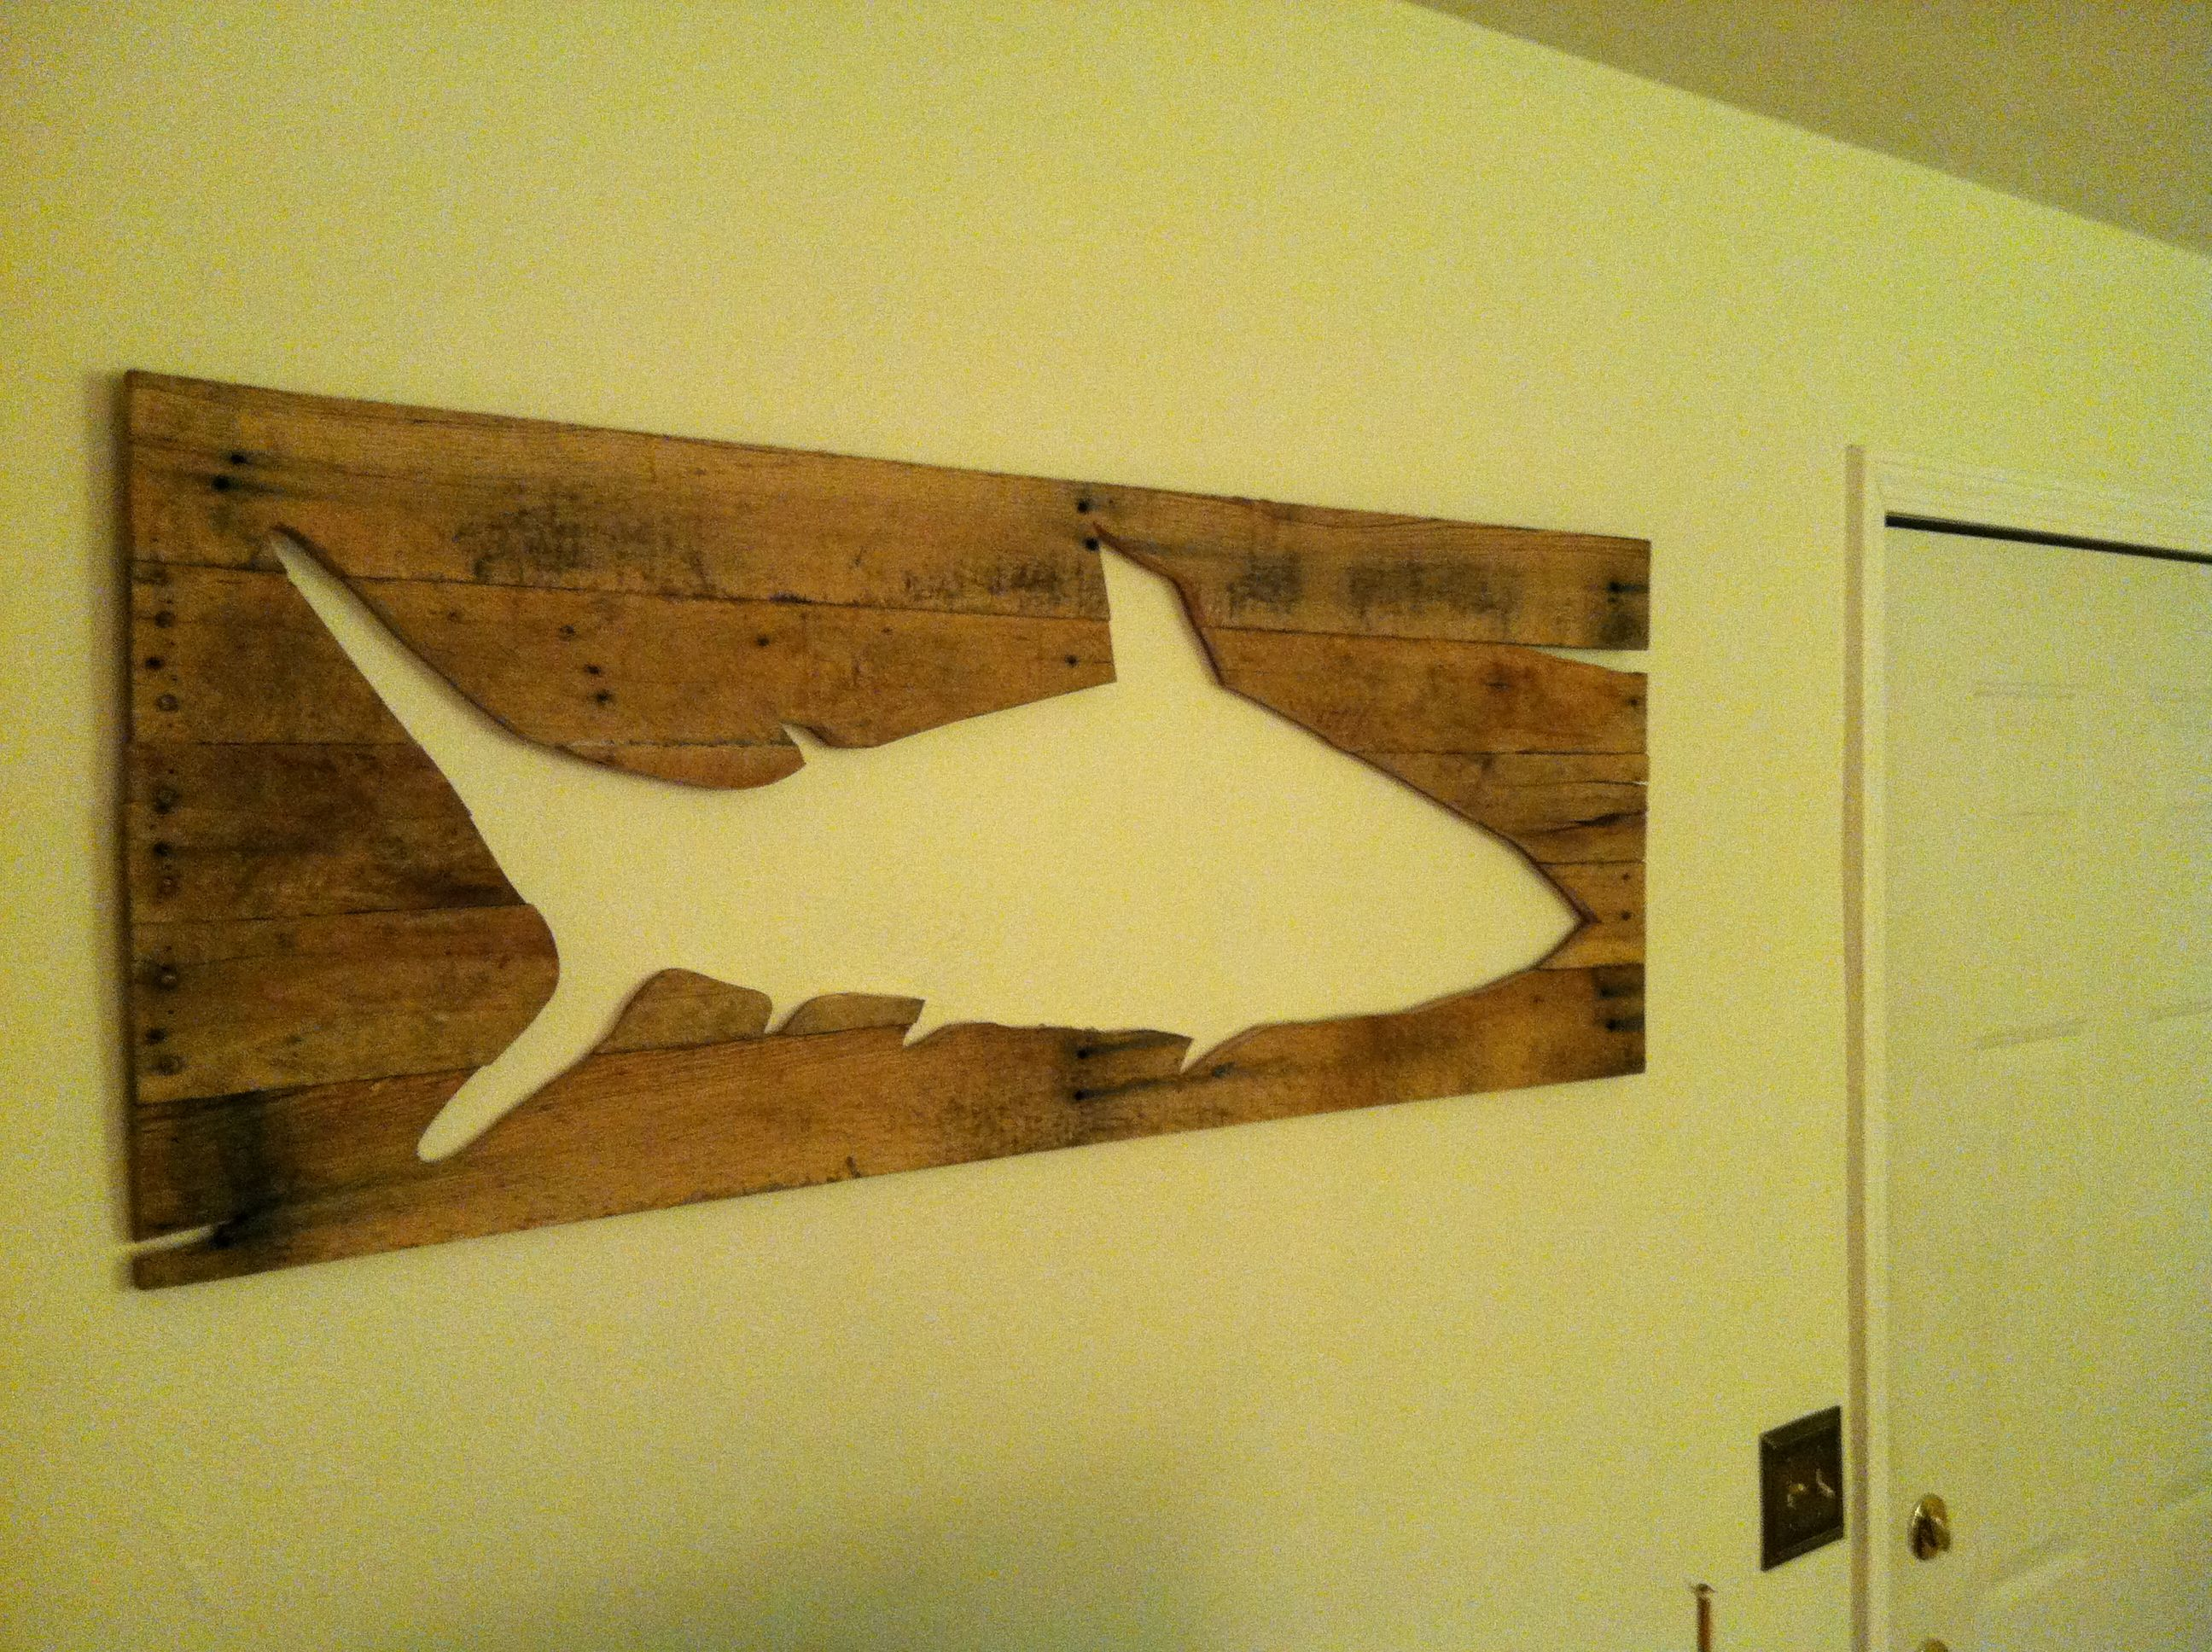 Pallet reclaimed wood fish art #wall #art #rustic | Fish decor ...